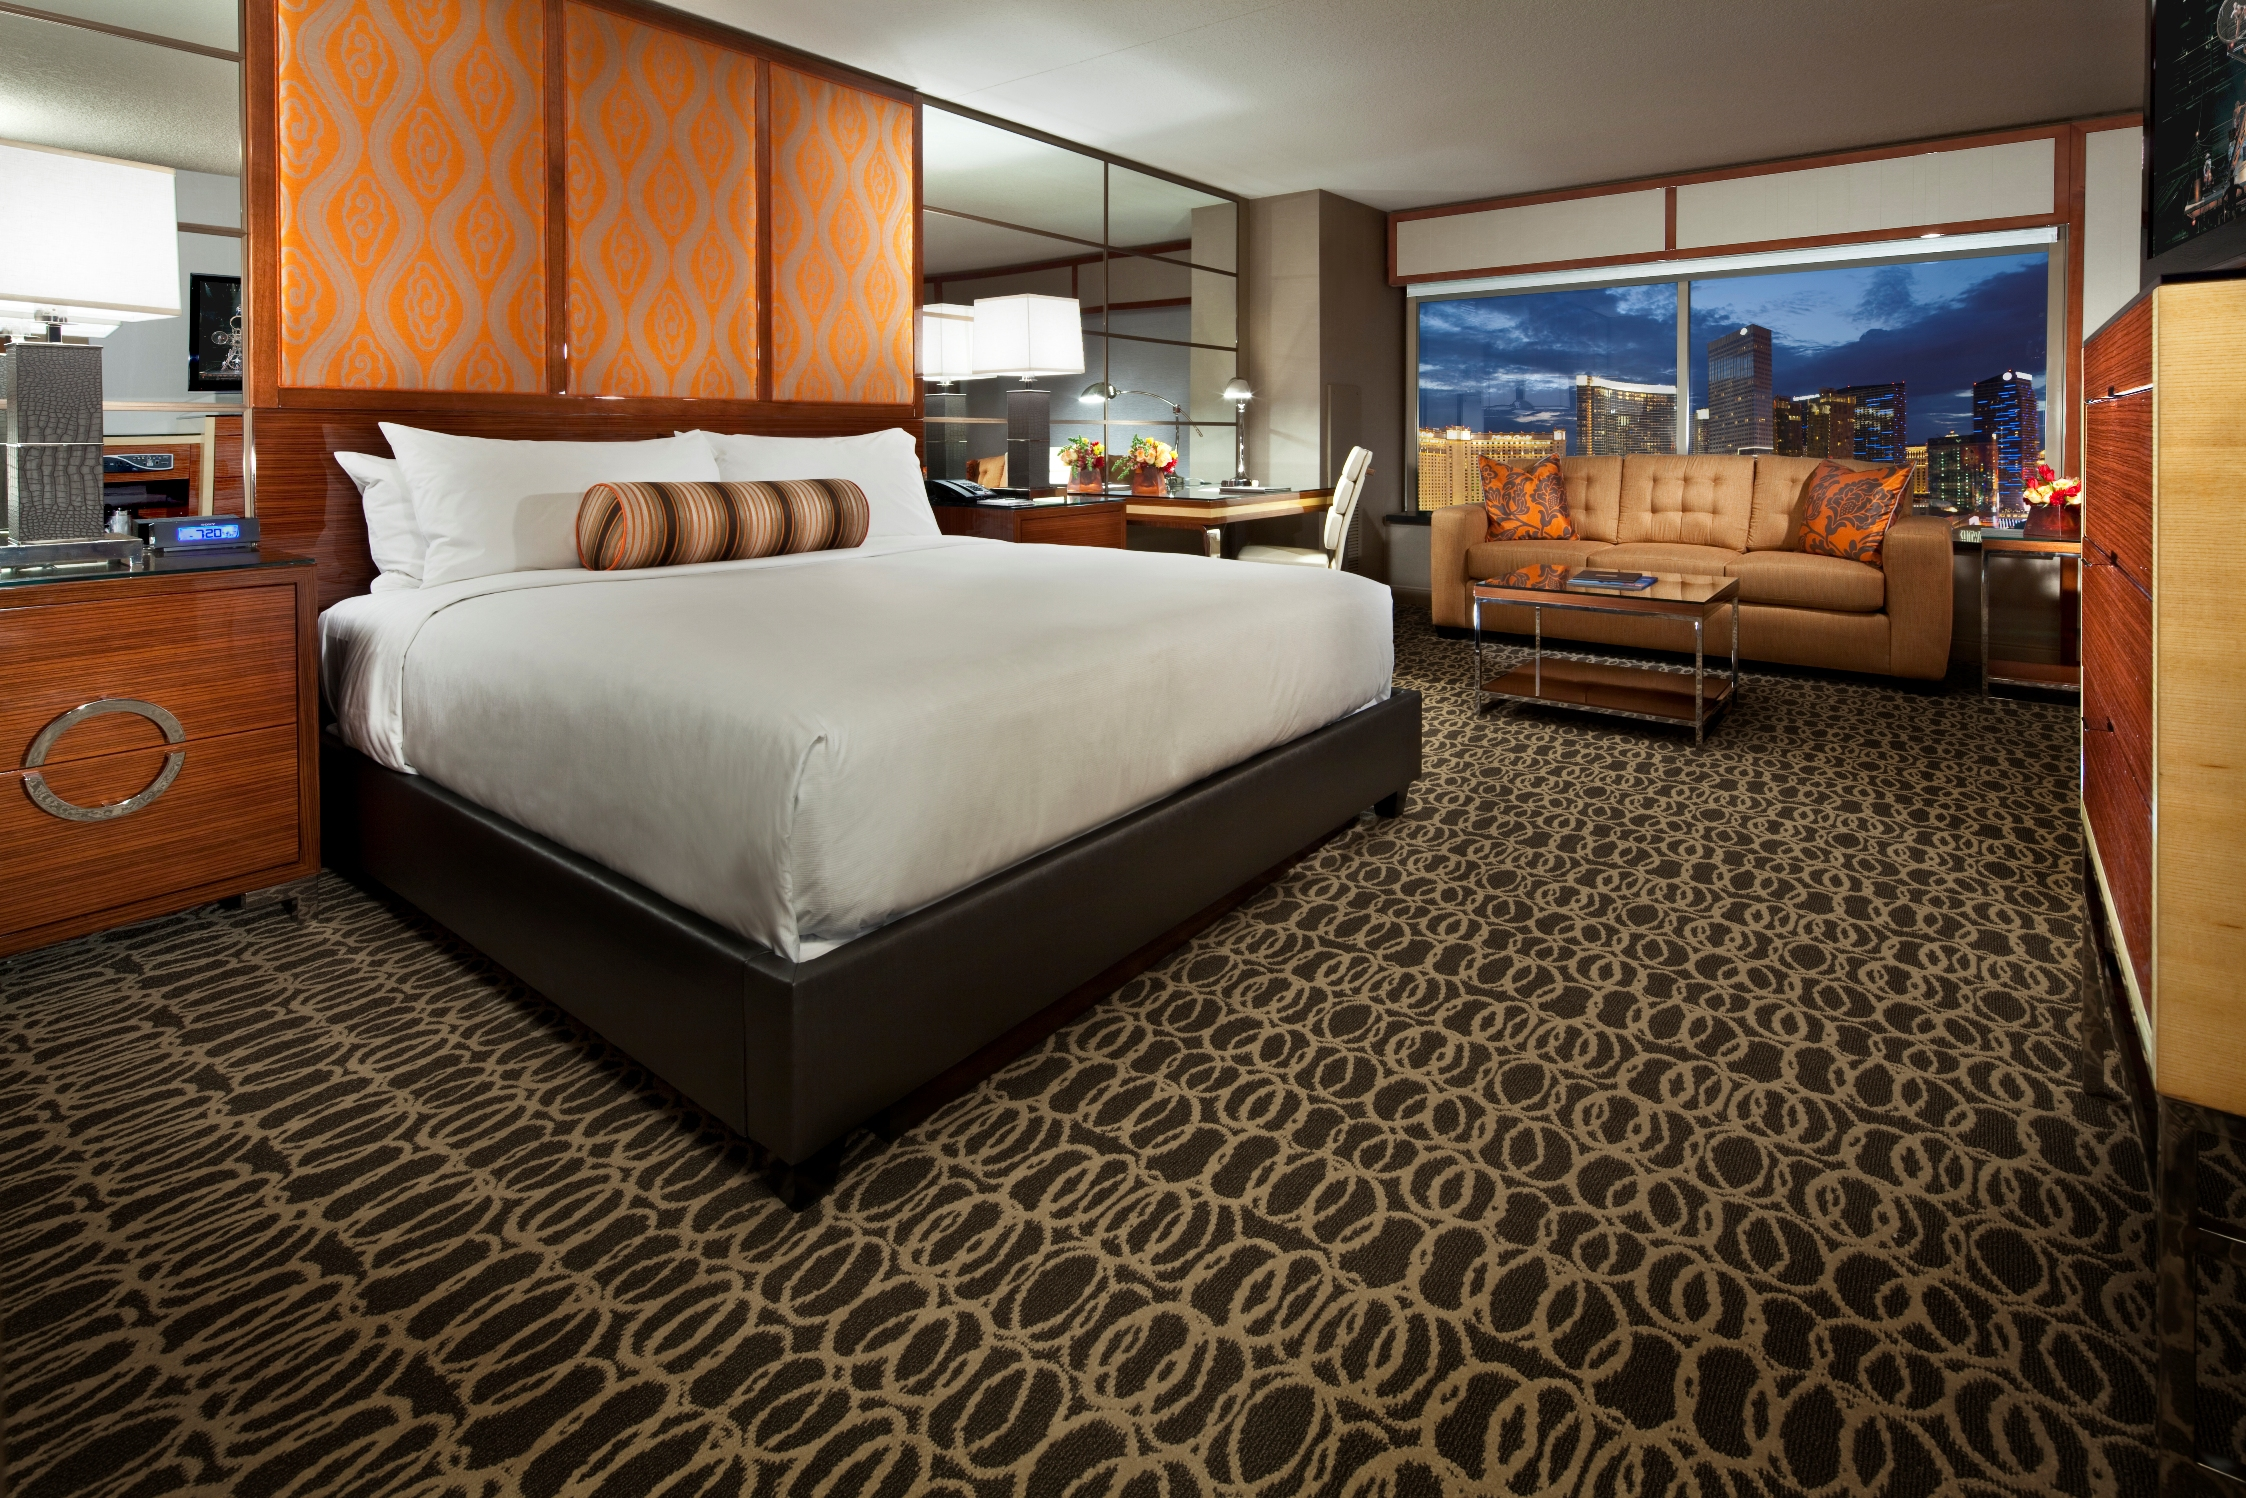 Mgm Two Bedroom Suite Mgm Grand Marks Major Milestone In Grand Renovation With